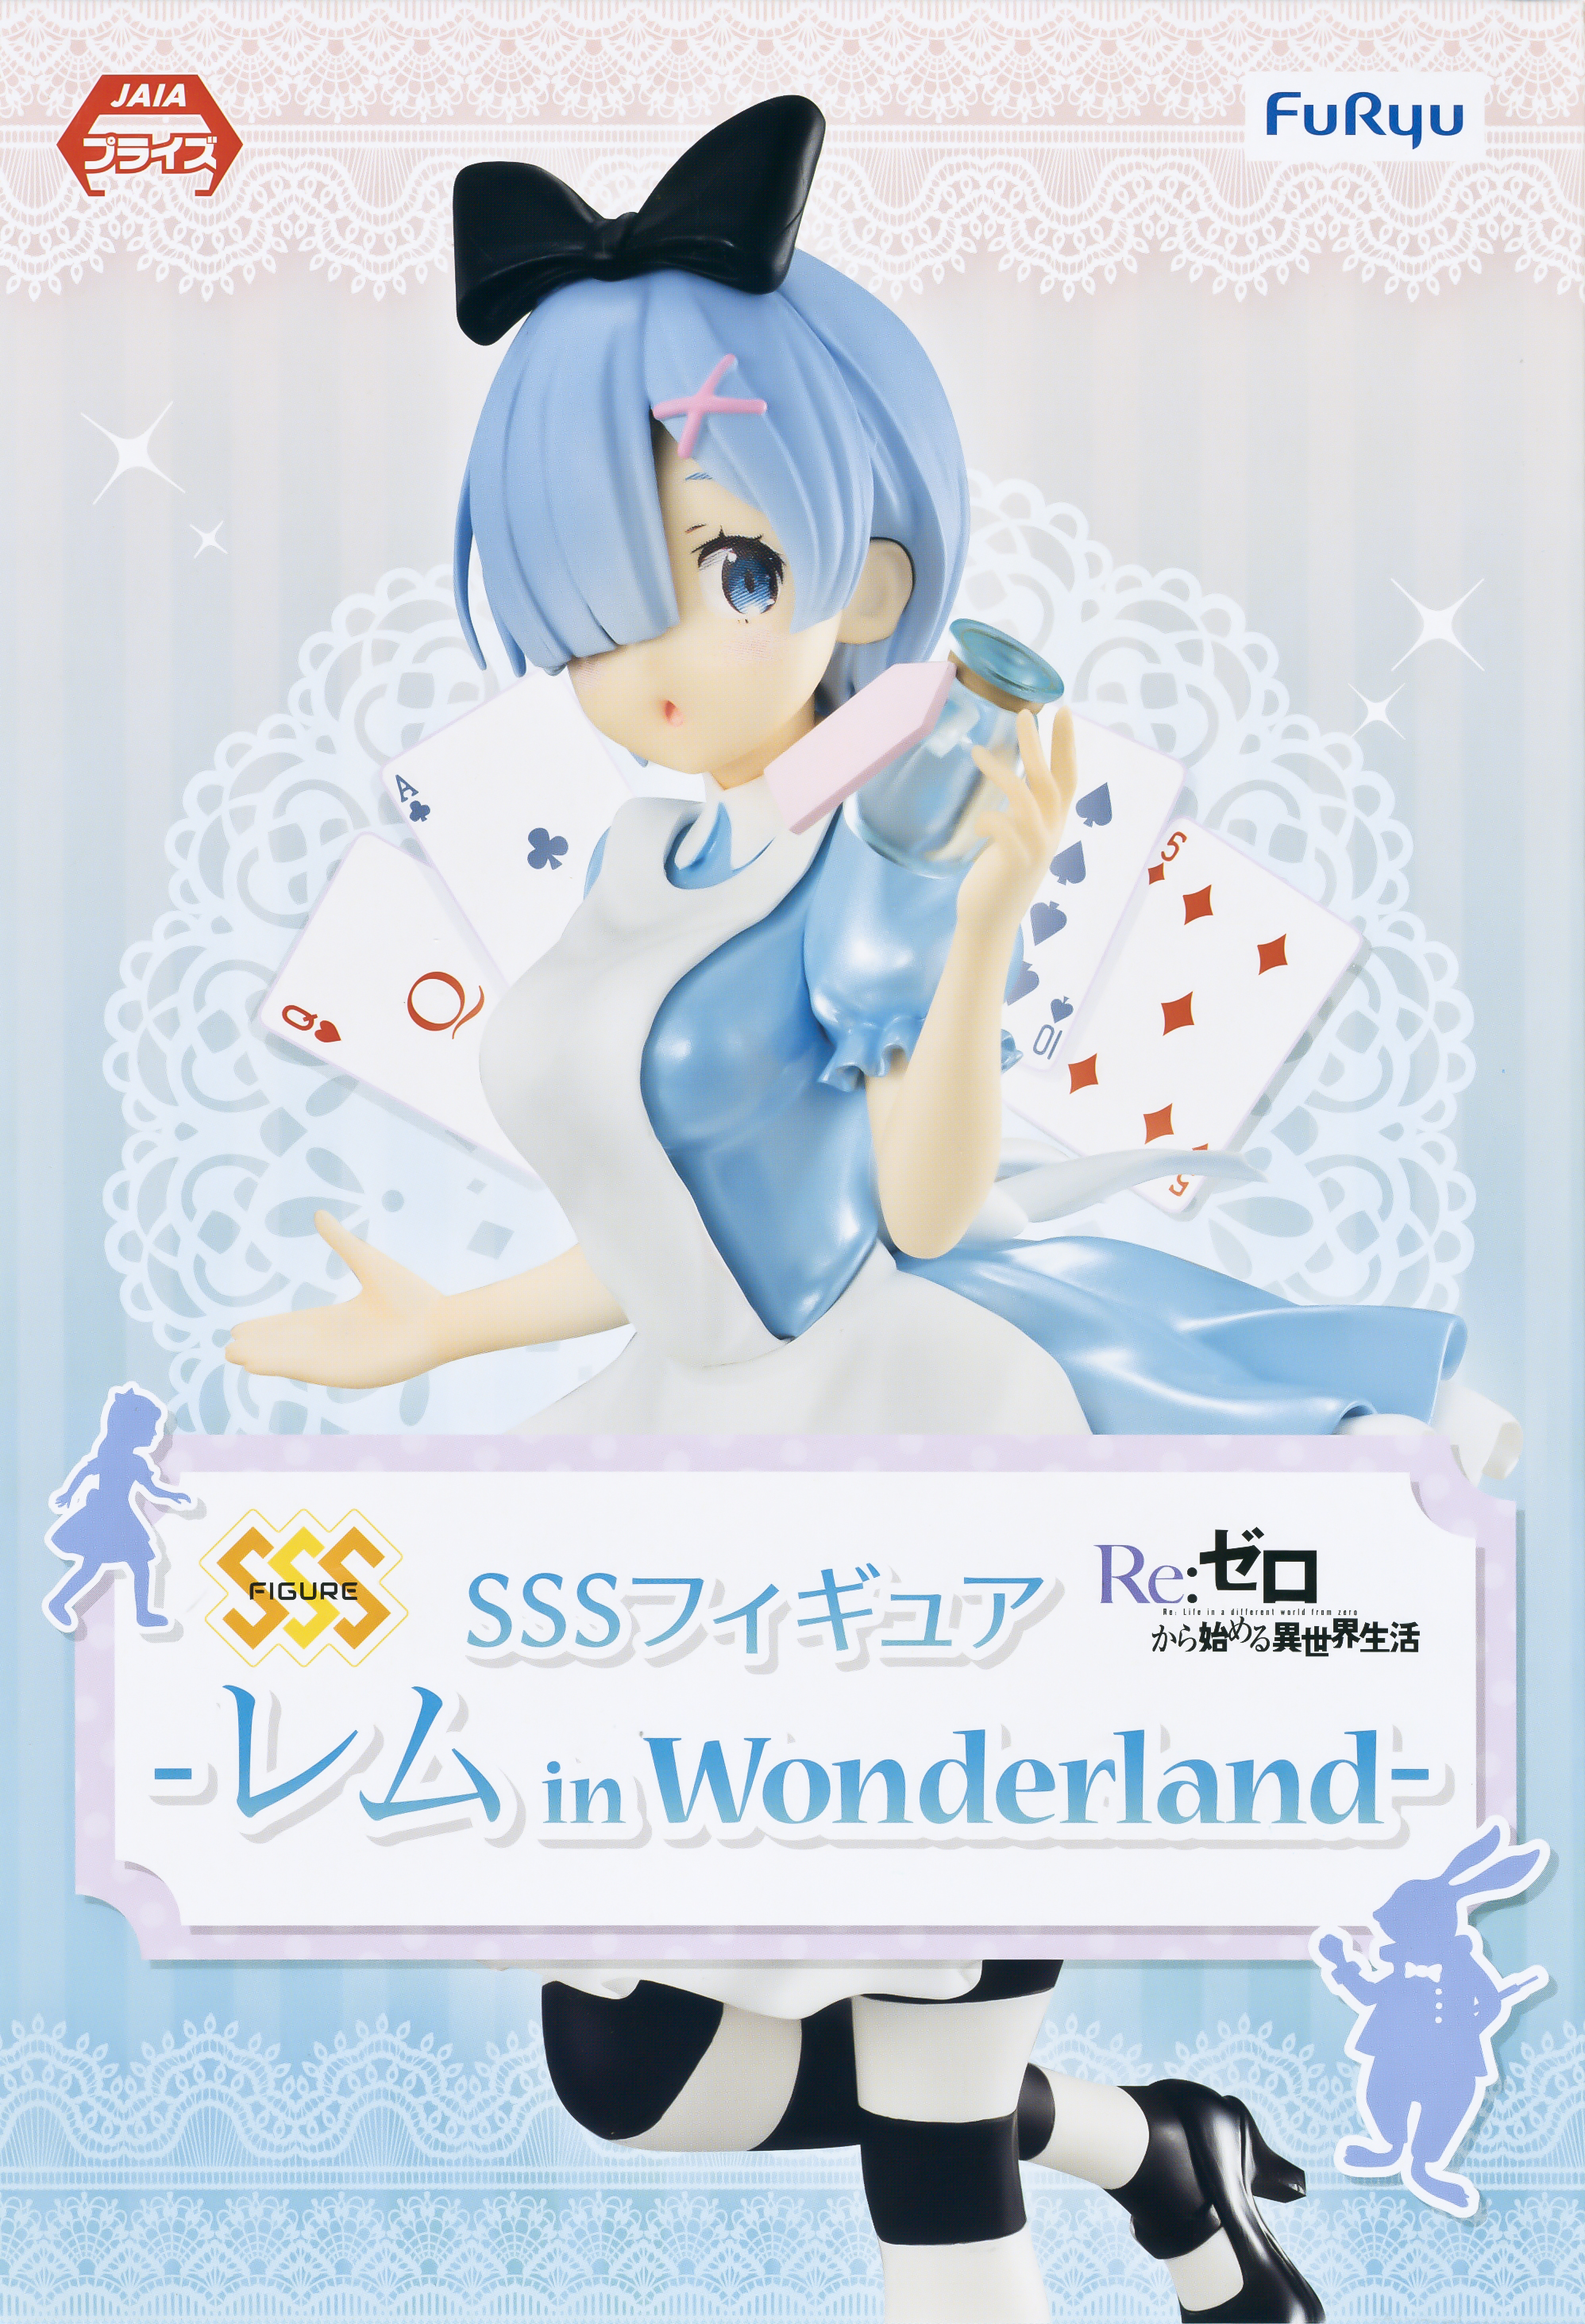 Rem, Alice In Wonderland Figure, Re:Zero - Starting Life in Another World, SSS Figure, Furyu